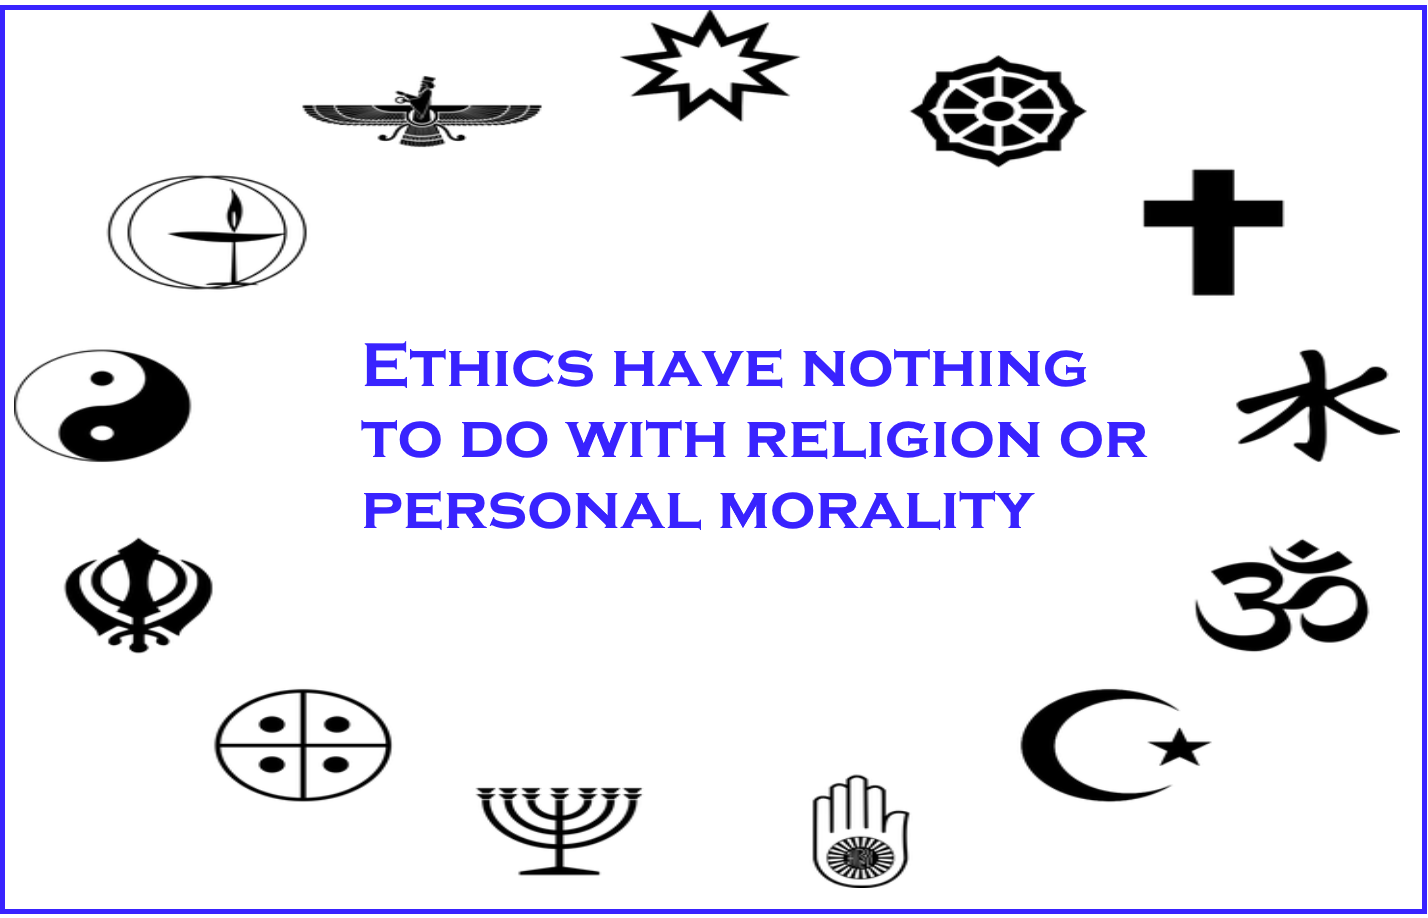 Depicts words 'ethics have nothing to do with religion or personal morality.